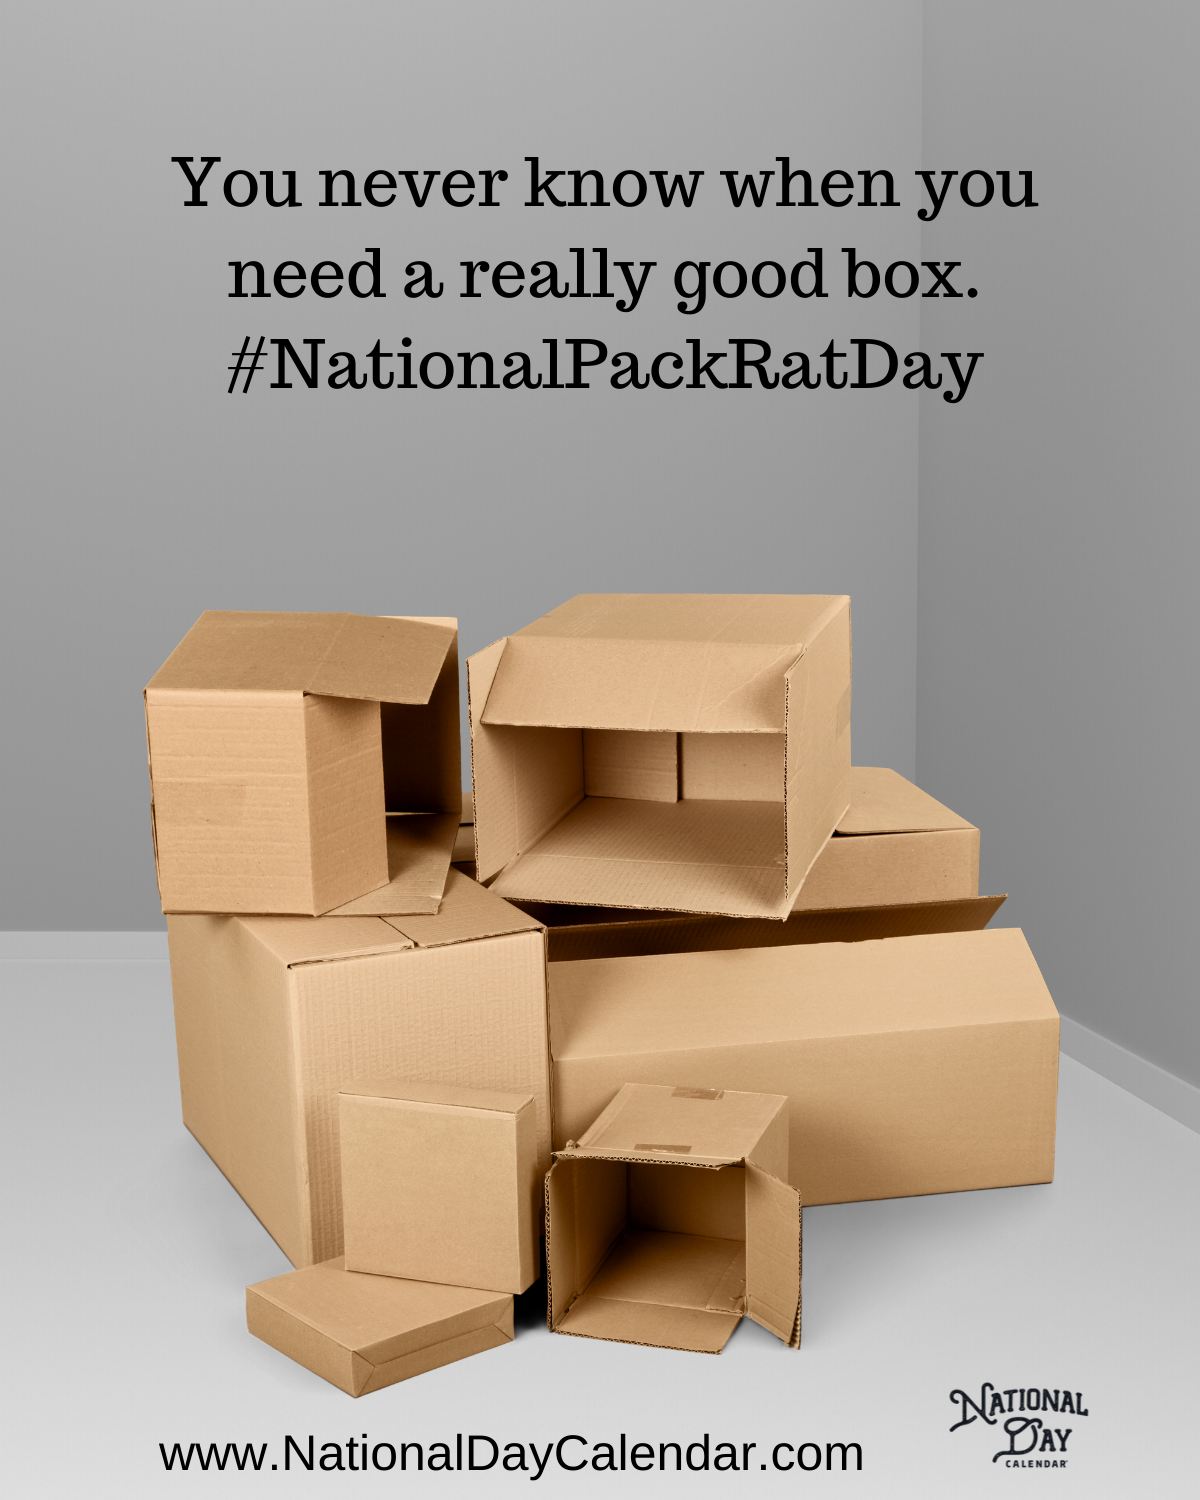 Good Boxes - National Pack Rat Day